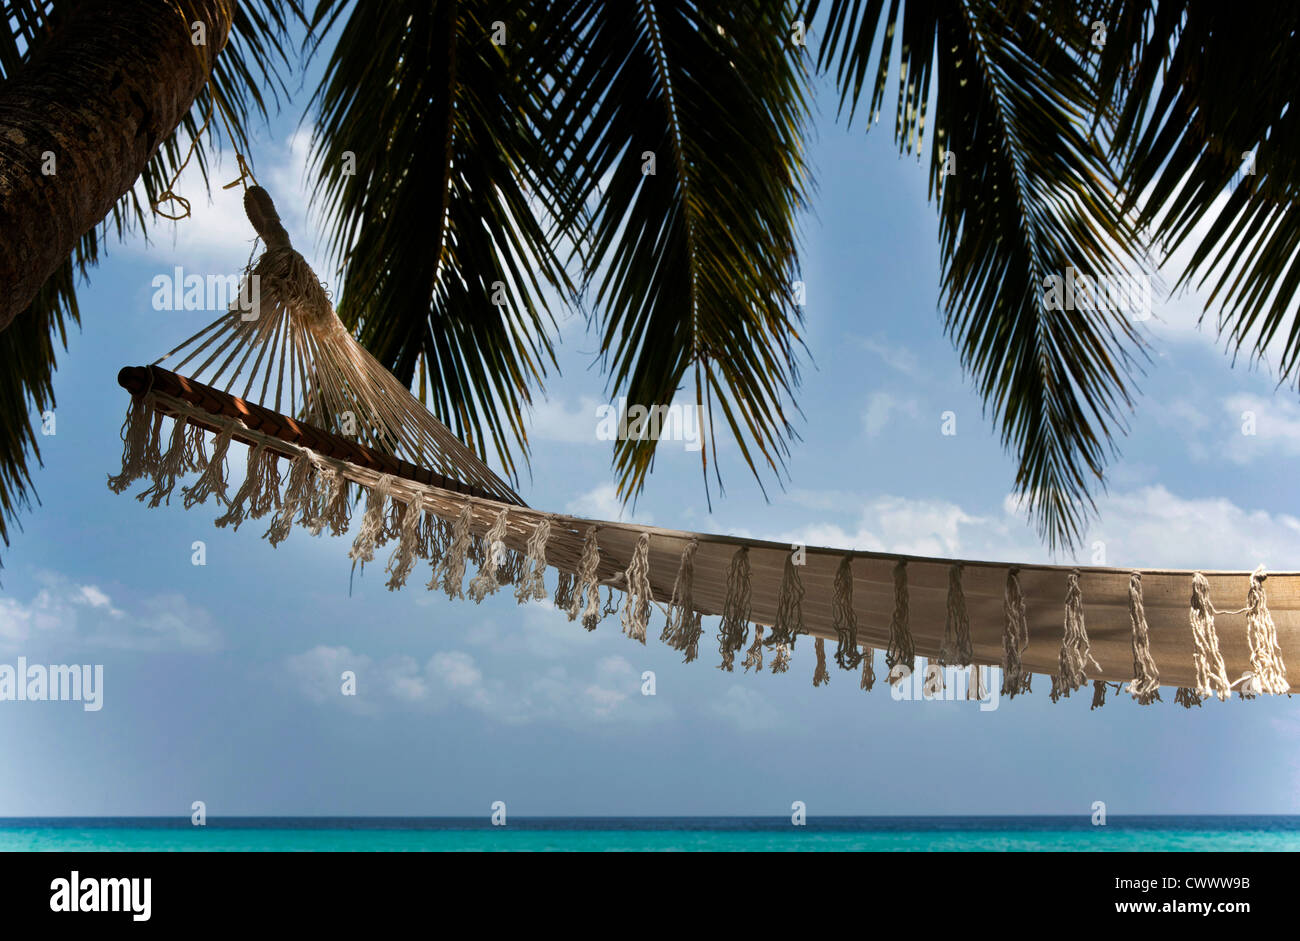 Hammock suspended from palm tree - Stock Image